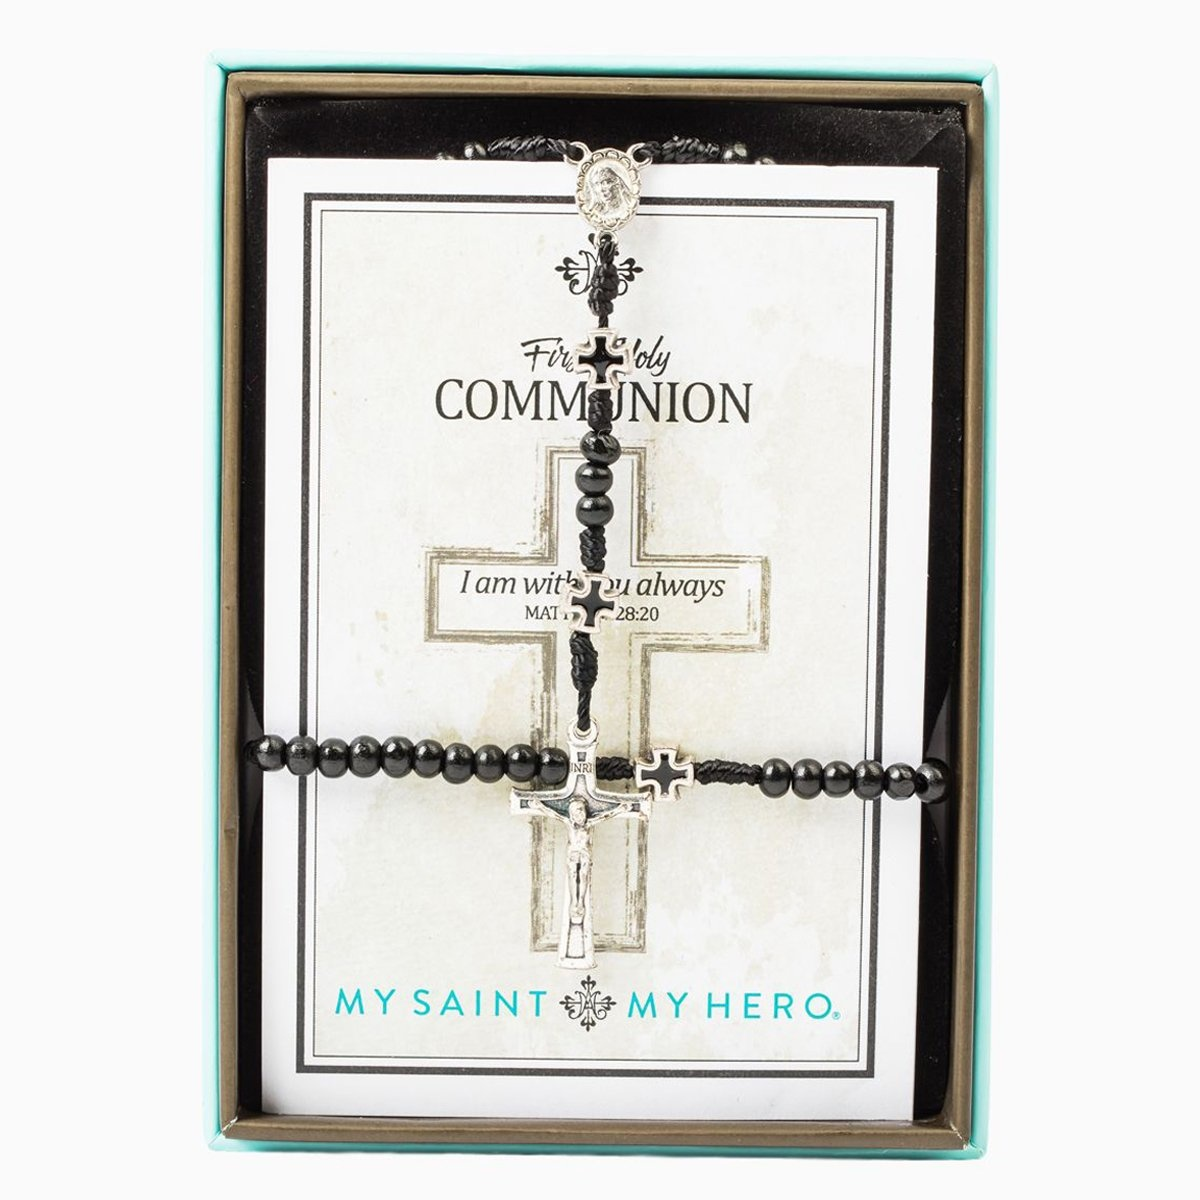 My Saint My Hero In Communion Men's Rosary & Bracelet Set